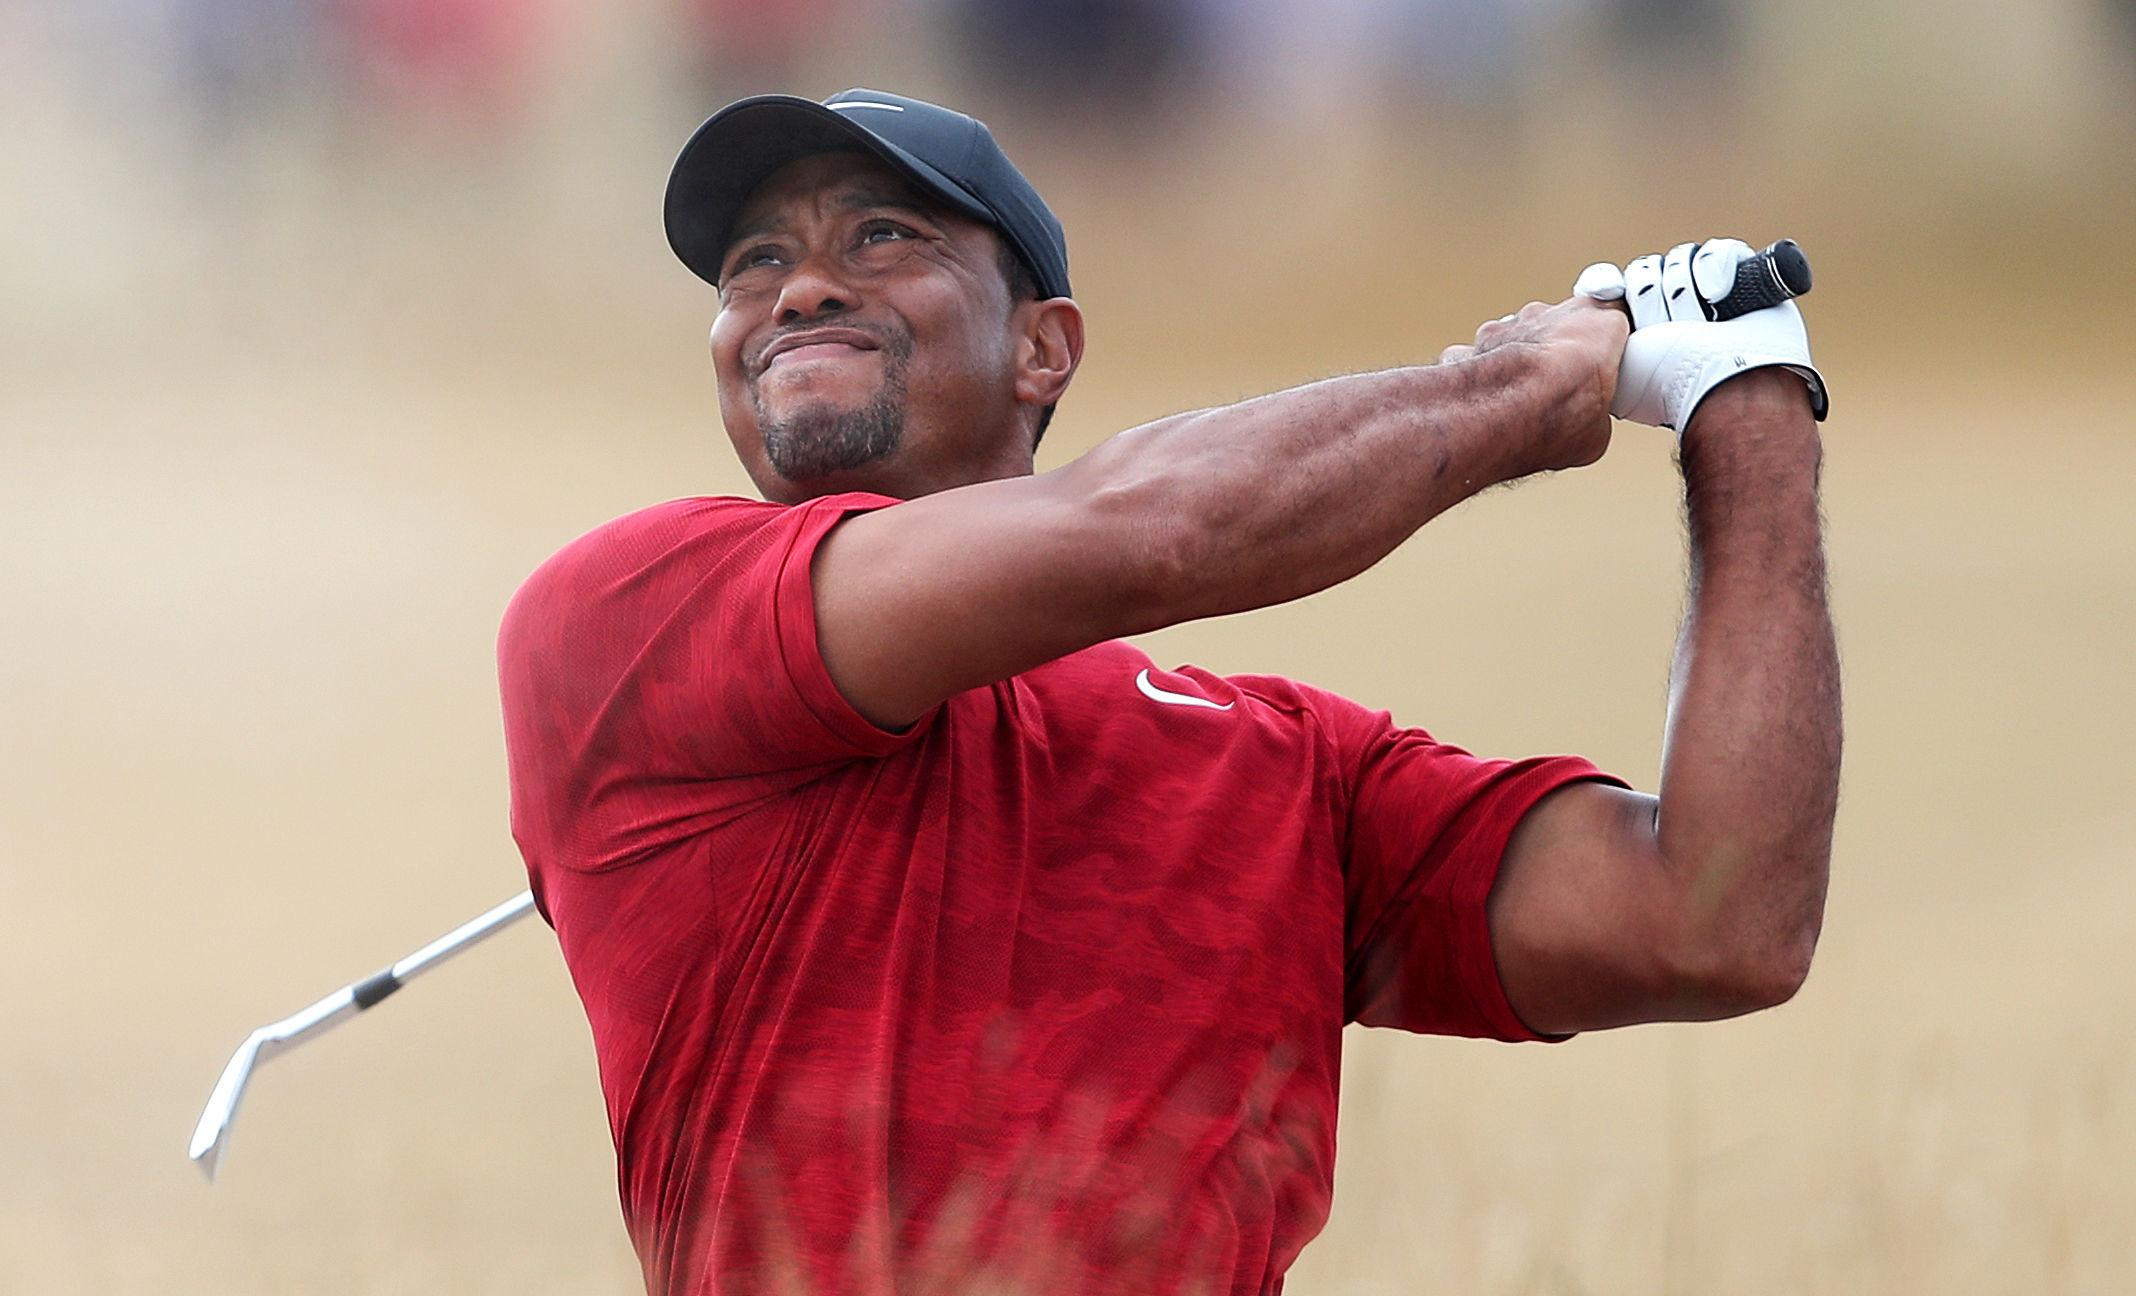 Tiger Woods struck a fan with his golf ball at the 11th hole during the final round of The Open